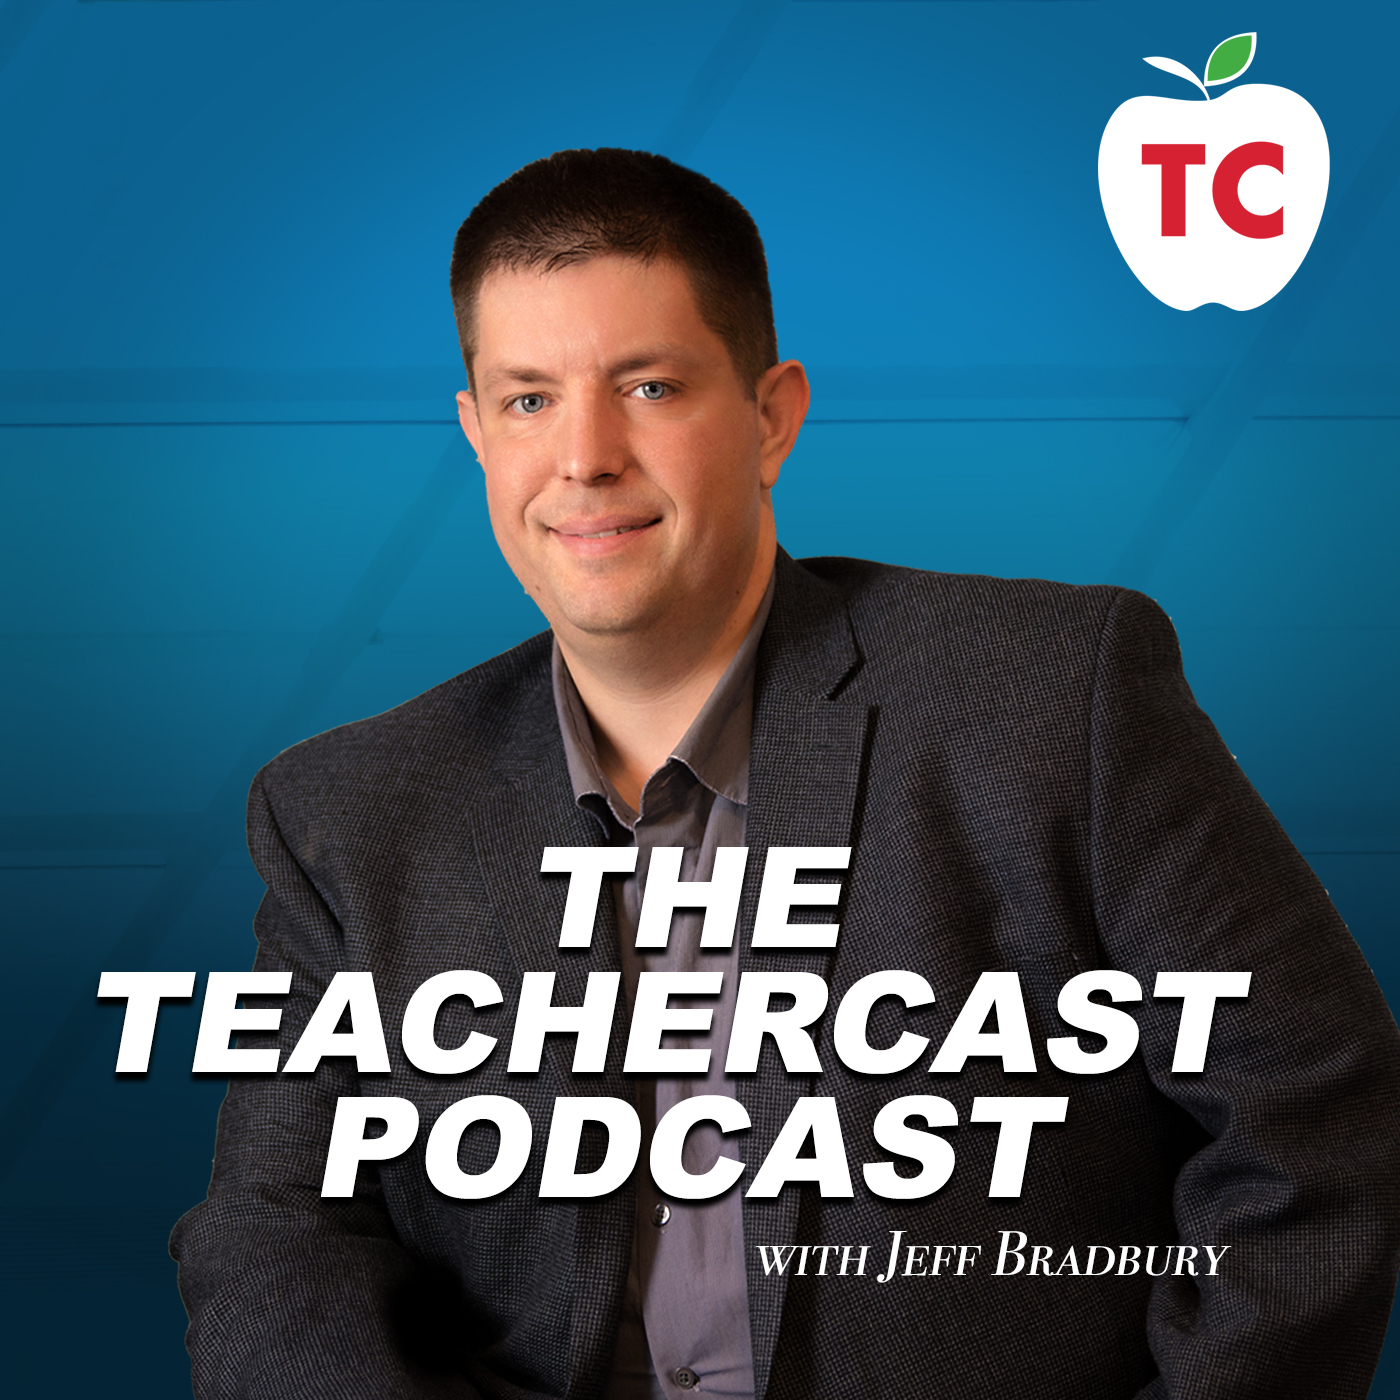 The Teachercast Podcast Square 1400x1400